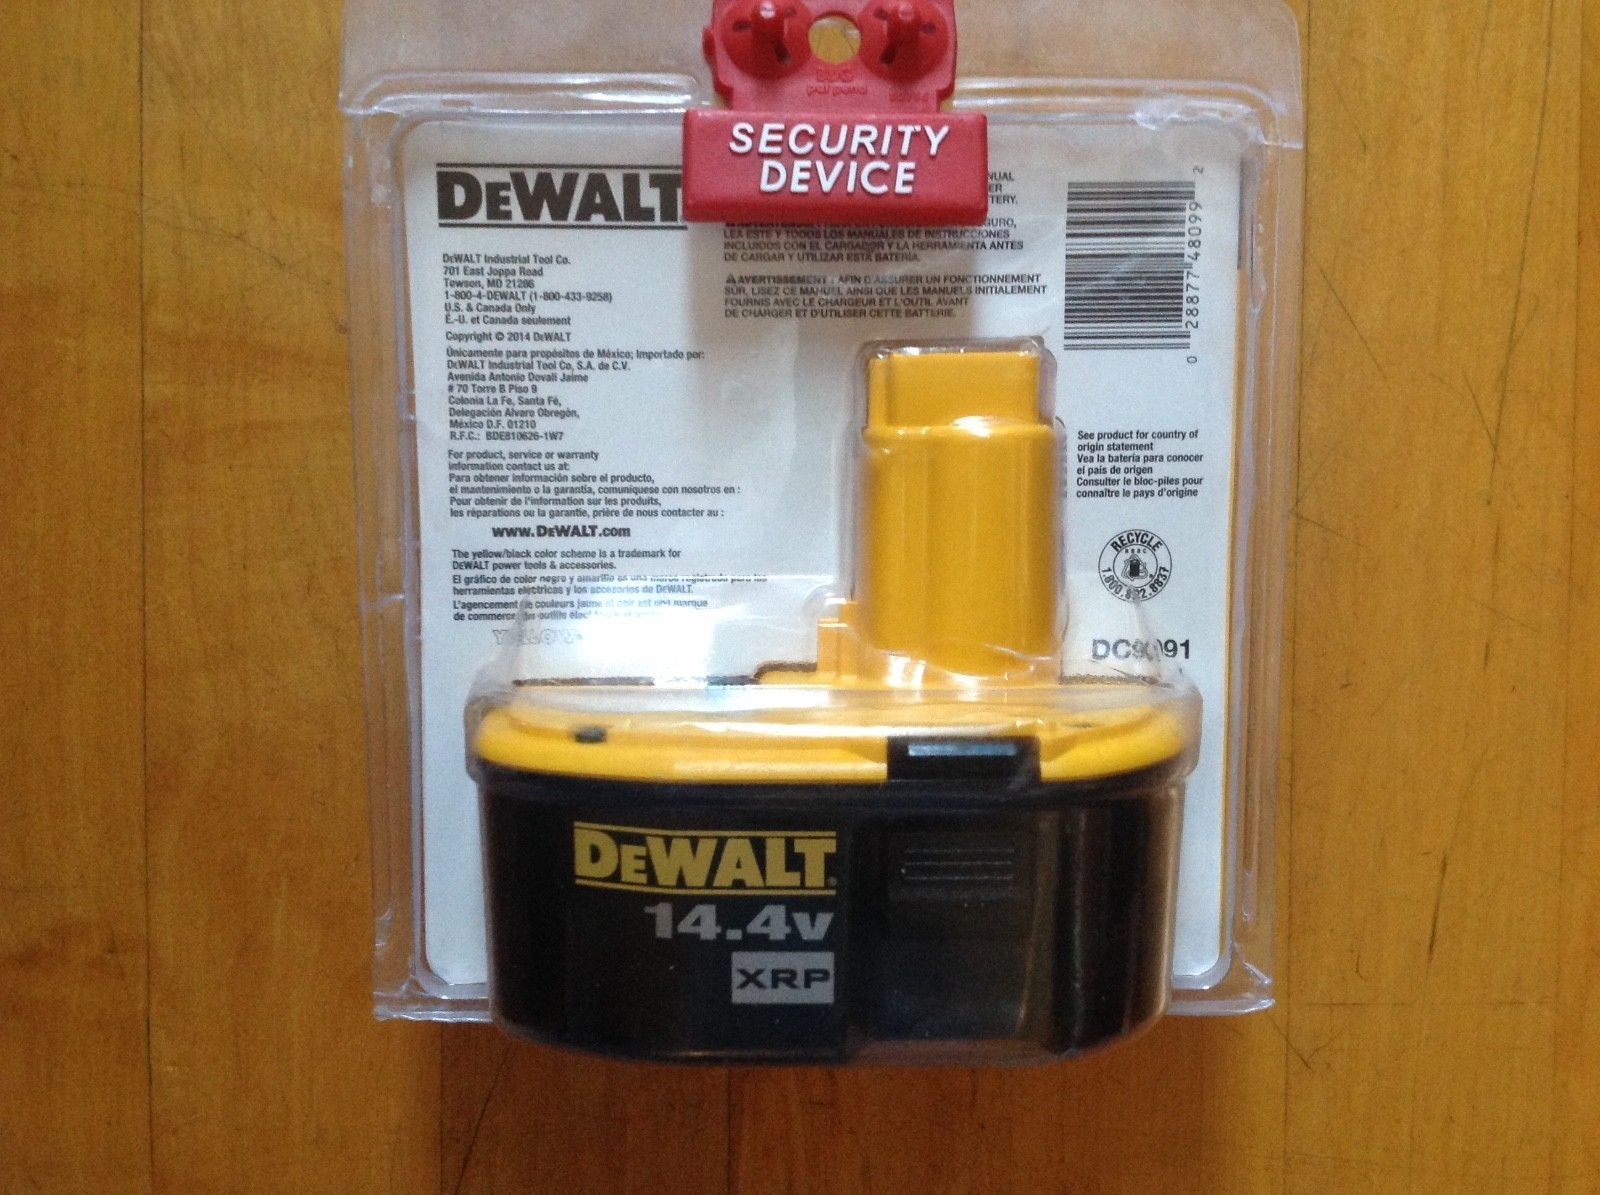 DeWALT DC9091 14.4V 2.4 Amp Hour XRP Cordless Tool Rechargeable Battery New image 6